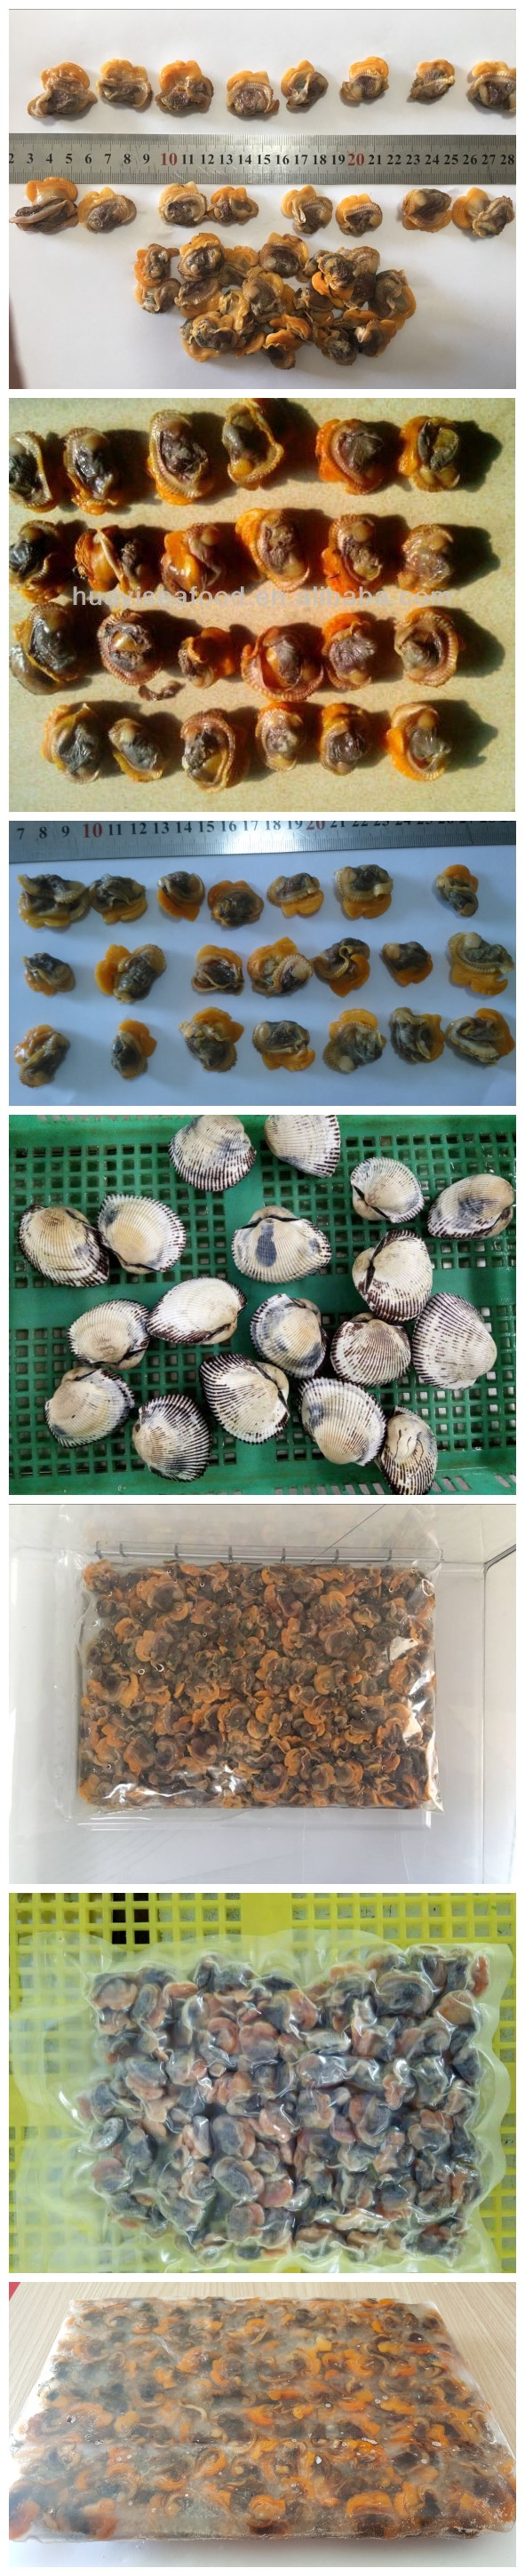 Chinese Organic Fresh Frozen Boiled Blood Clam for Importer